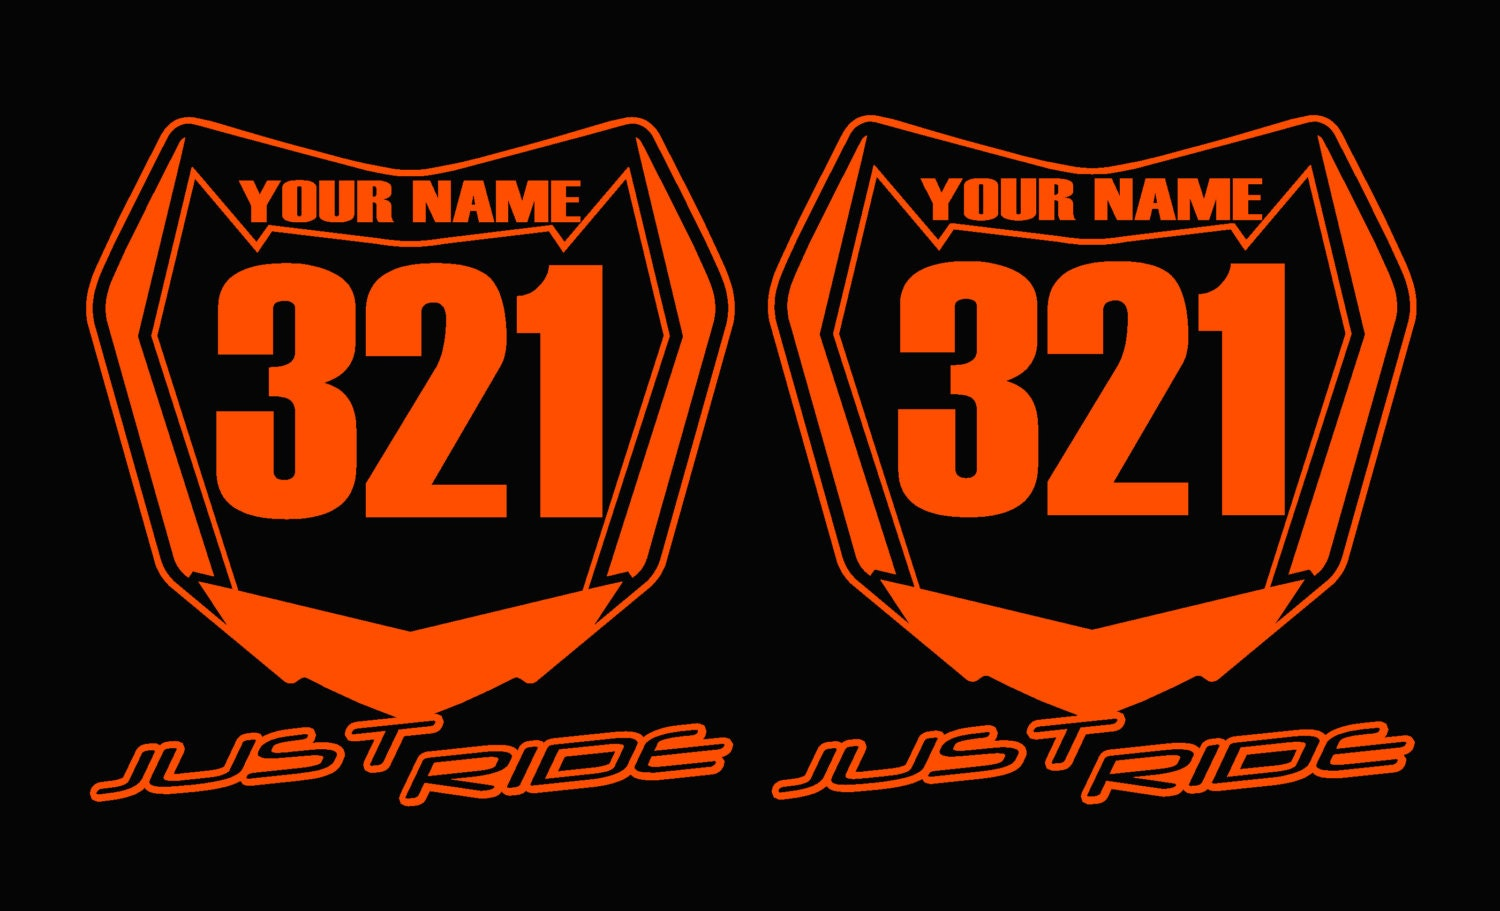 Vintage motocross number plate graphics -  Zoom